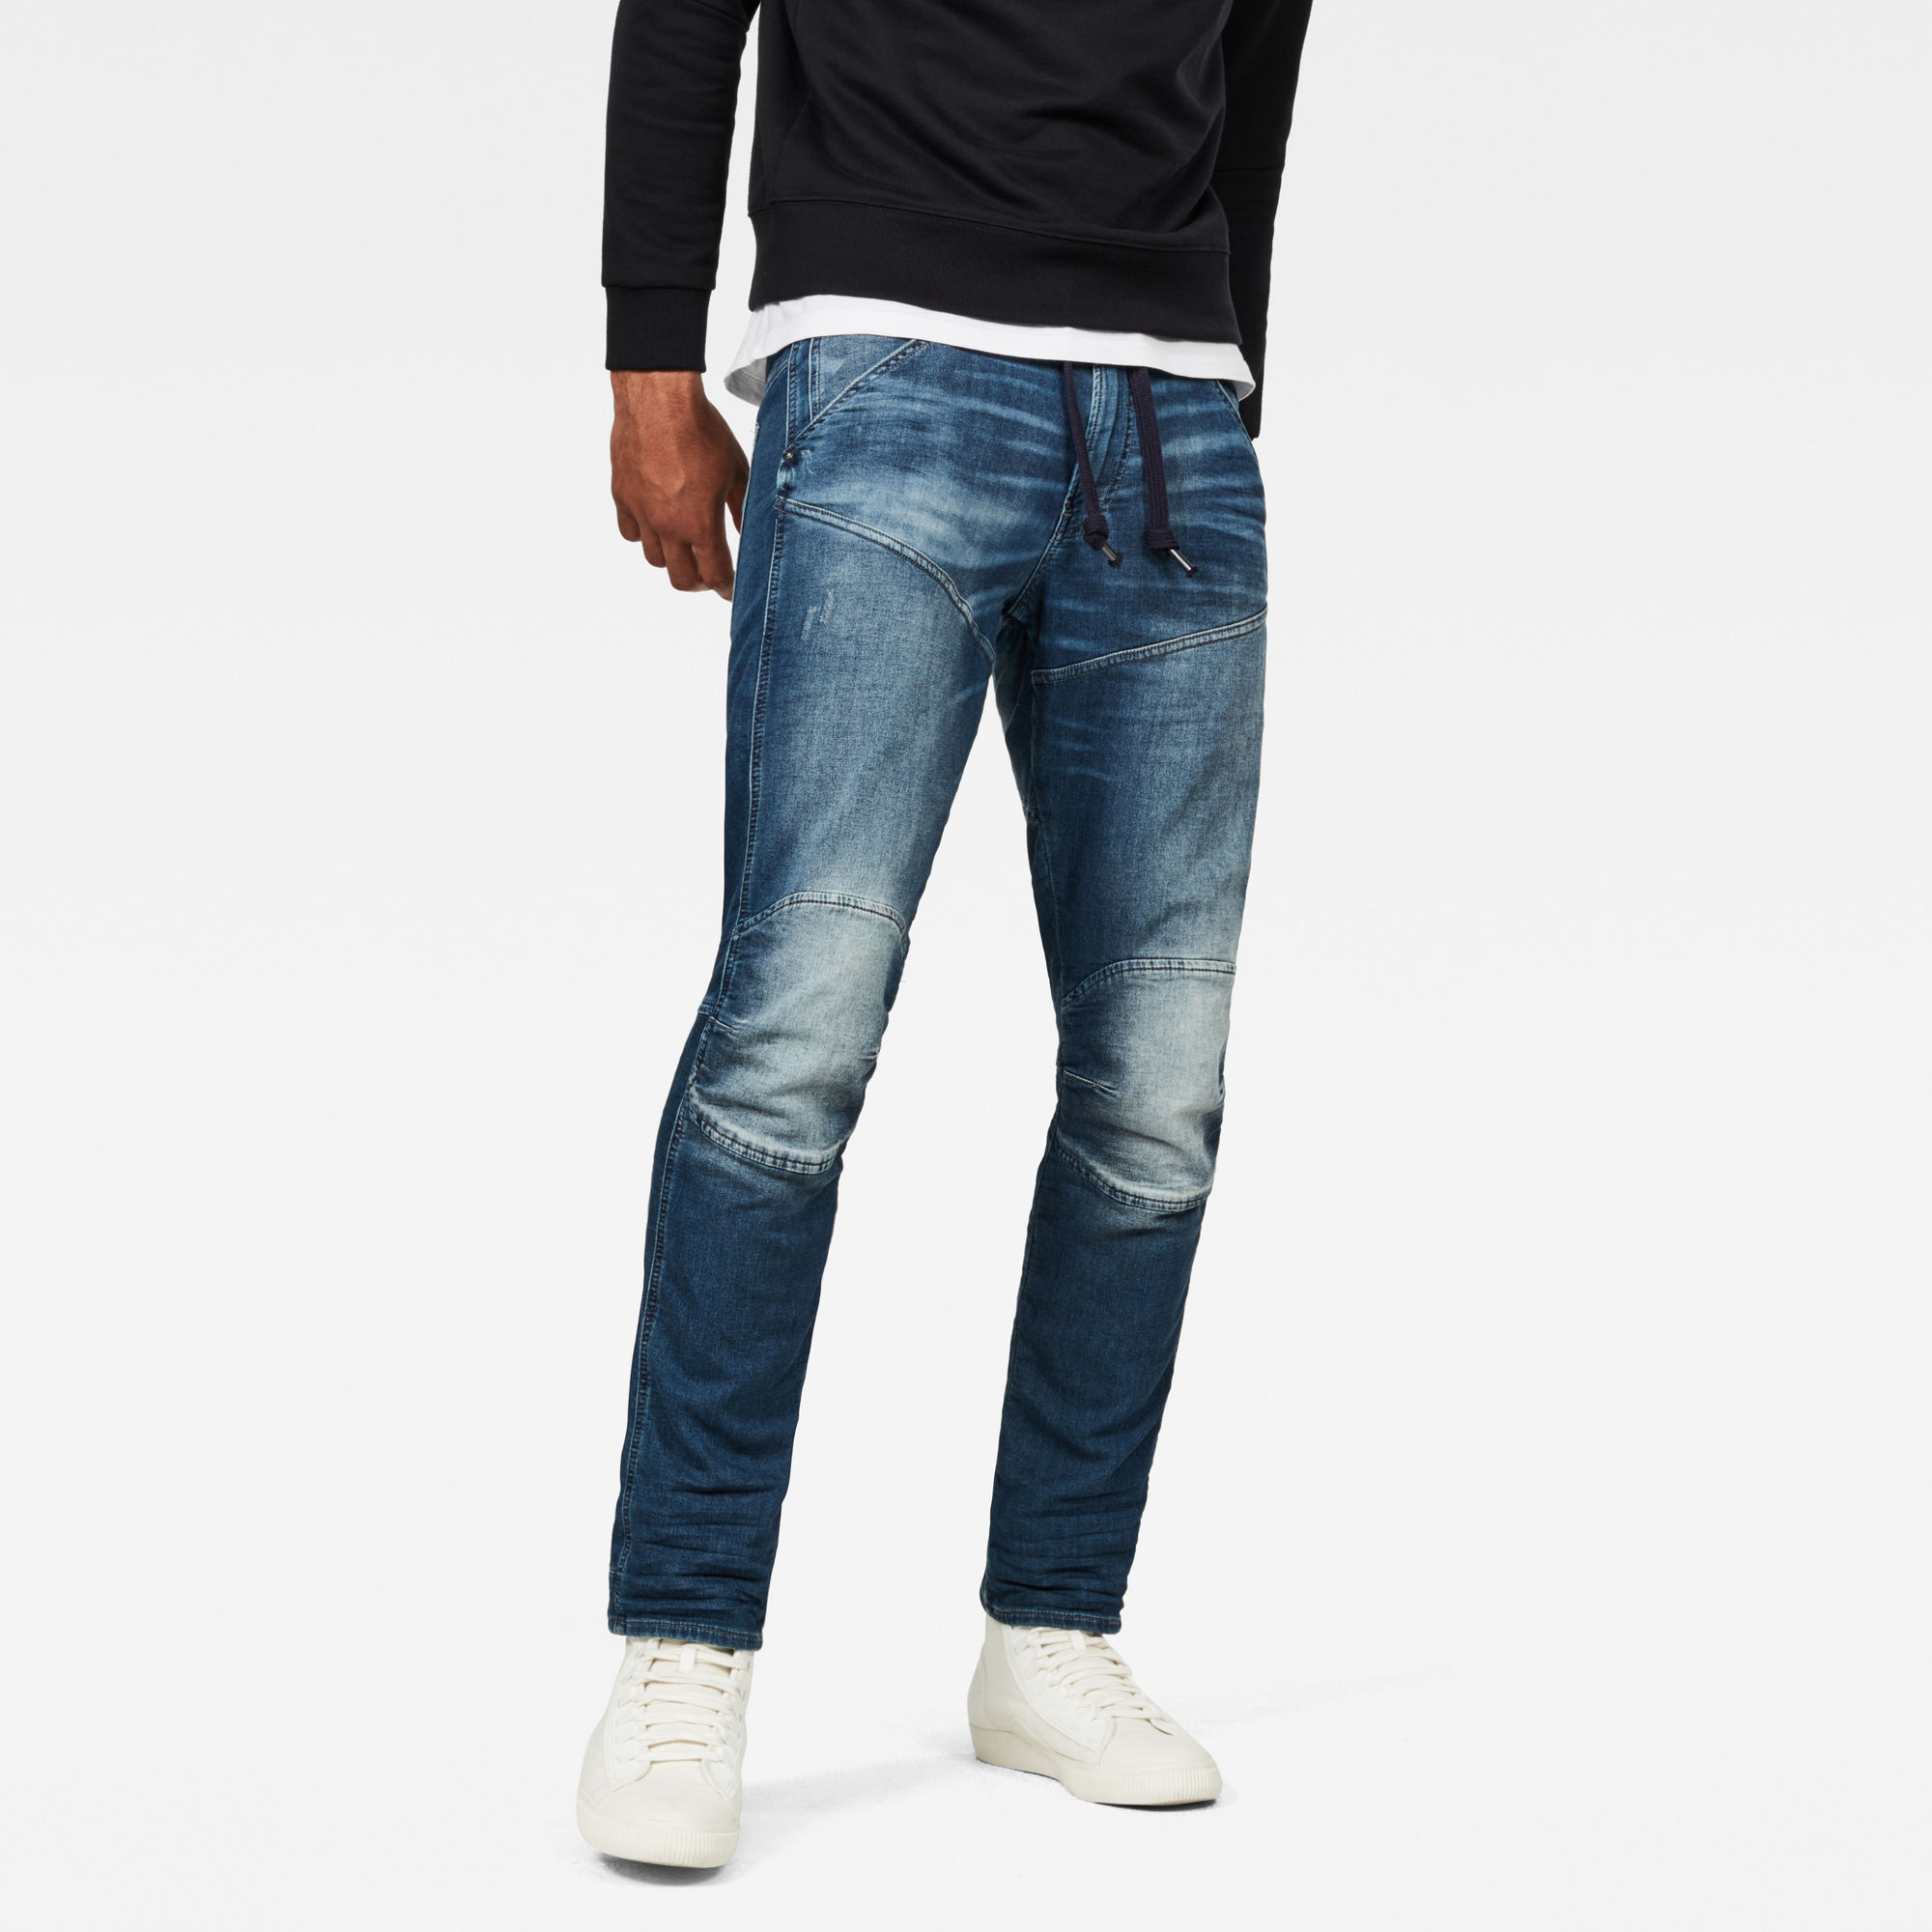 Image of G Star Raw G-Star Elwood 5620 3D Sport Tapered Pants